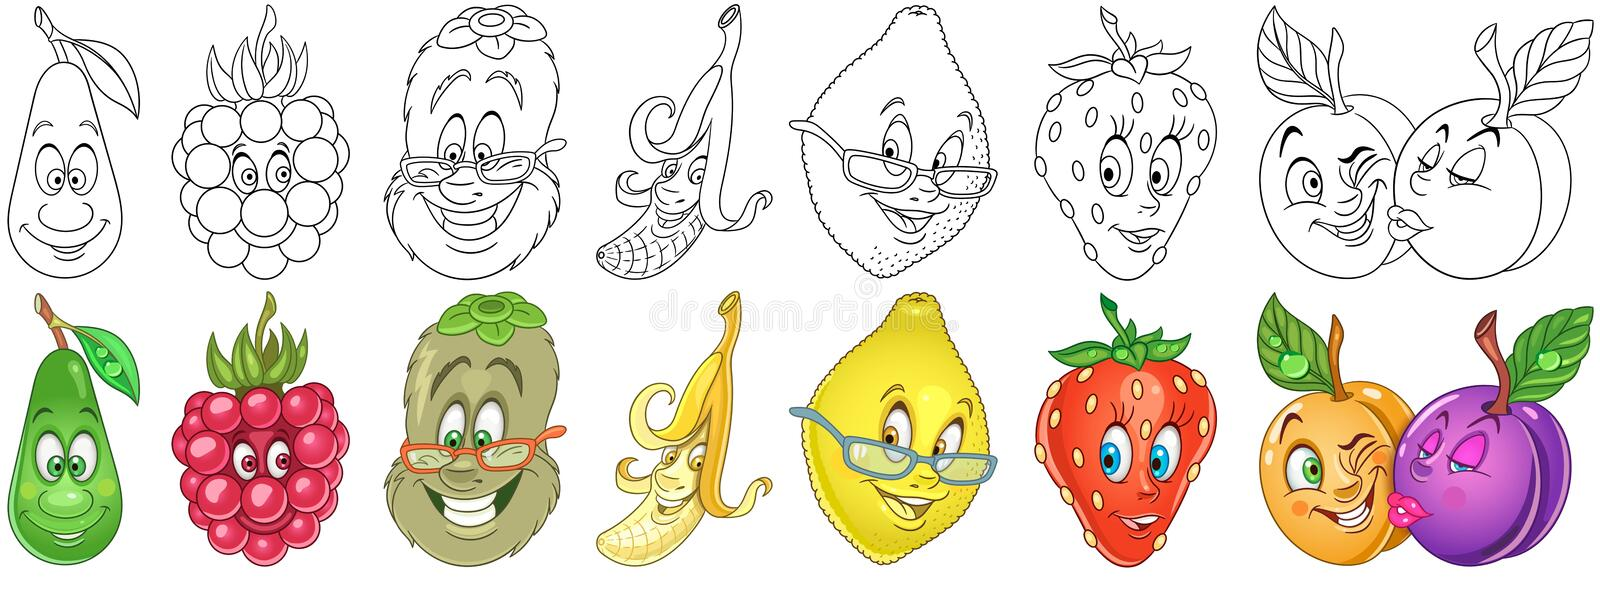 Cartoon Fruits set royalty free stock photography